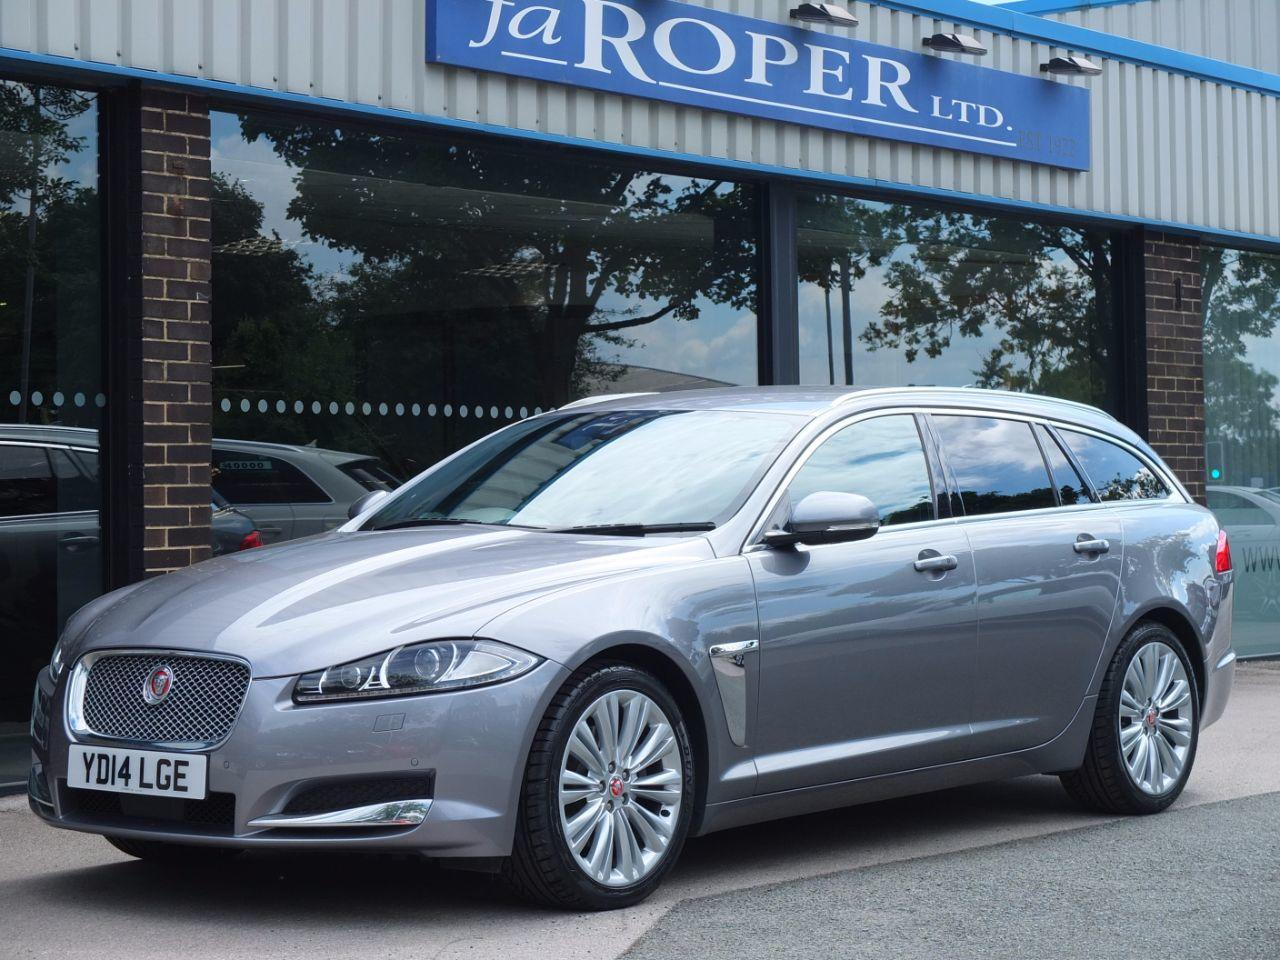 Jaguar XF 2.2d [200ps] Portfolio Sportbrake Auto Estate Diesel Luna Grey MetallicJaguar XF 2.2d [200ps] Portfolio Sportbrake Auto Estate Diesel Luna Grey Metallic at fa Roper Ltd Bradford